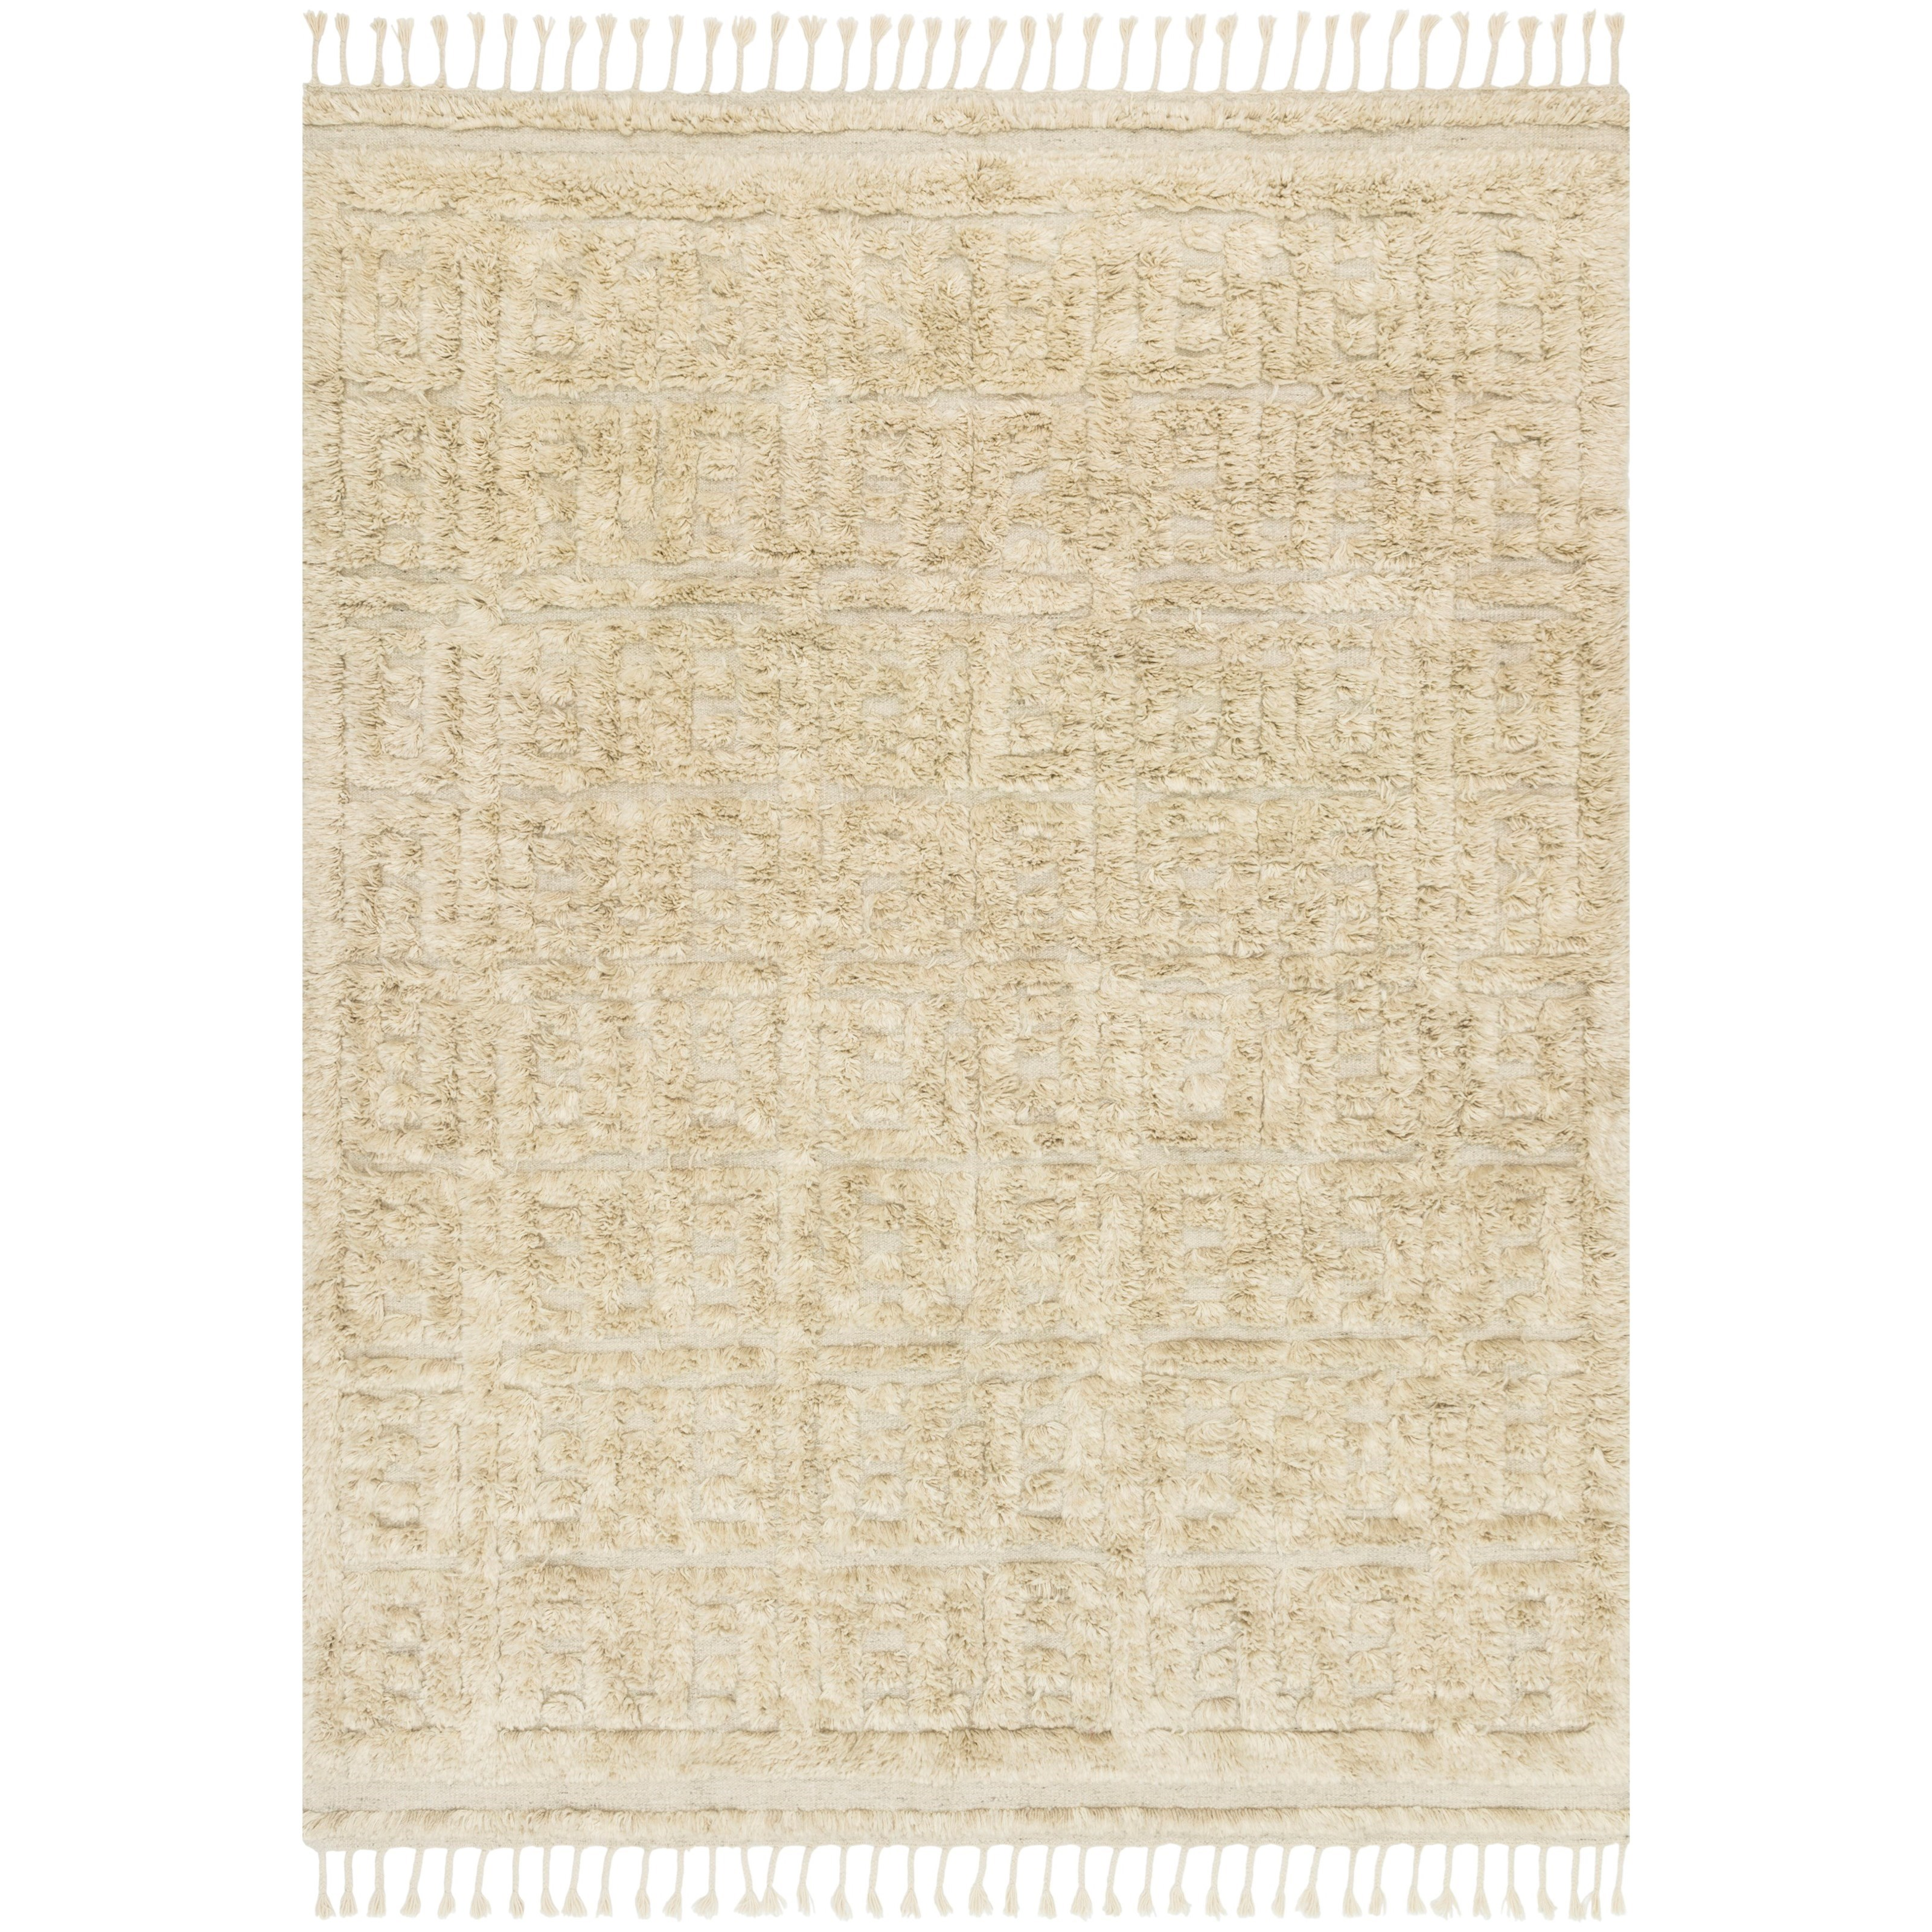 """Hygge 9'6"""" x 13'6"""" Oatmeal / Sand Rug by Loloi Rugs at Virginia Furniture Market"""